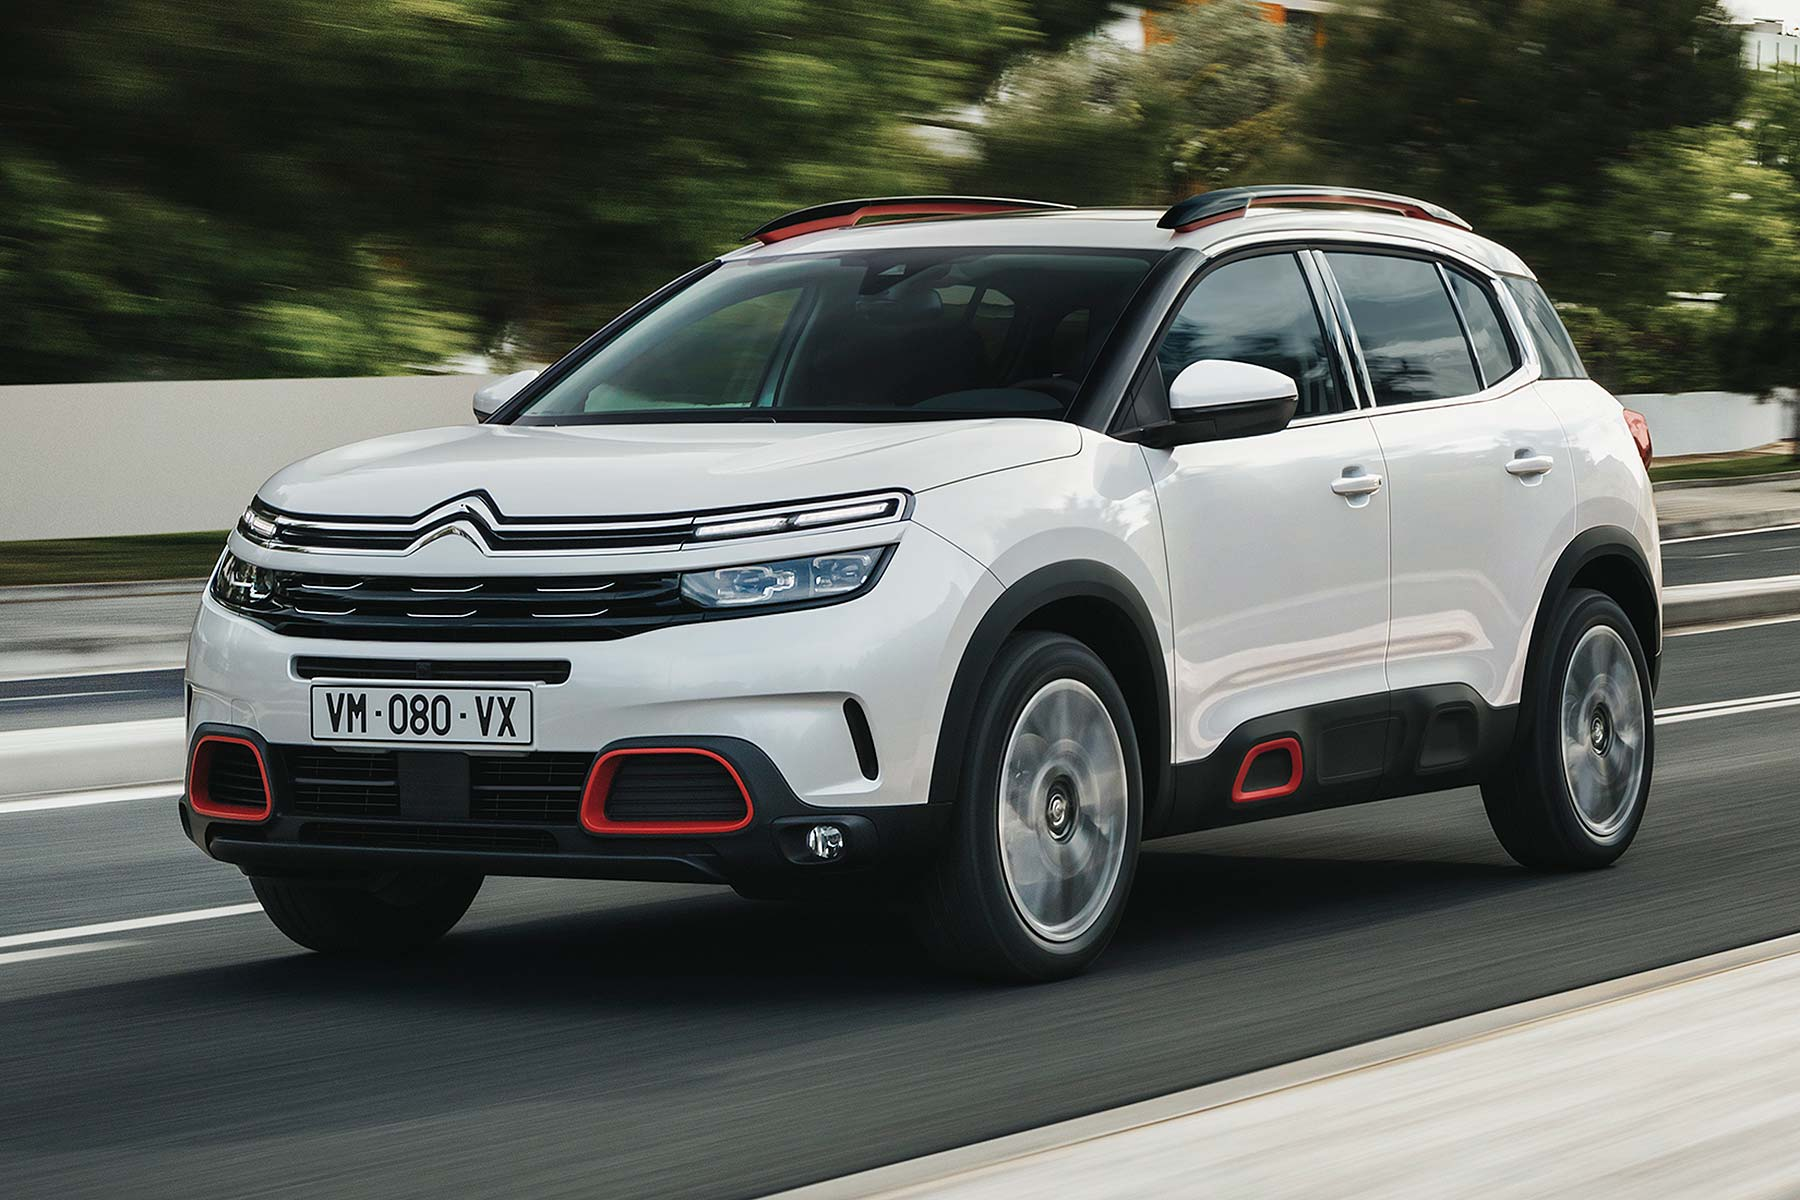 new citroen c5 aircross family suv prices from 23 225 motoring research. Black Bedroom Furniture Sets. Home Design Ideas